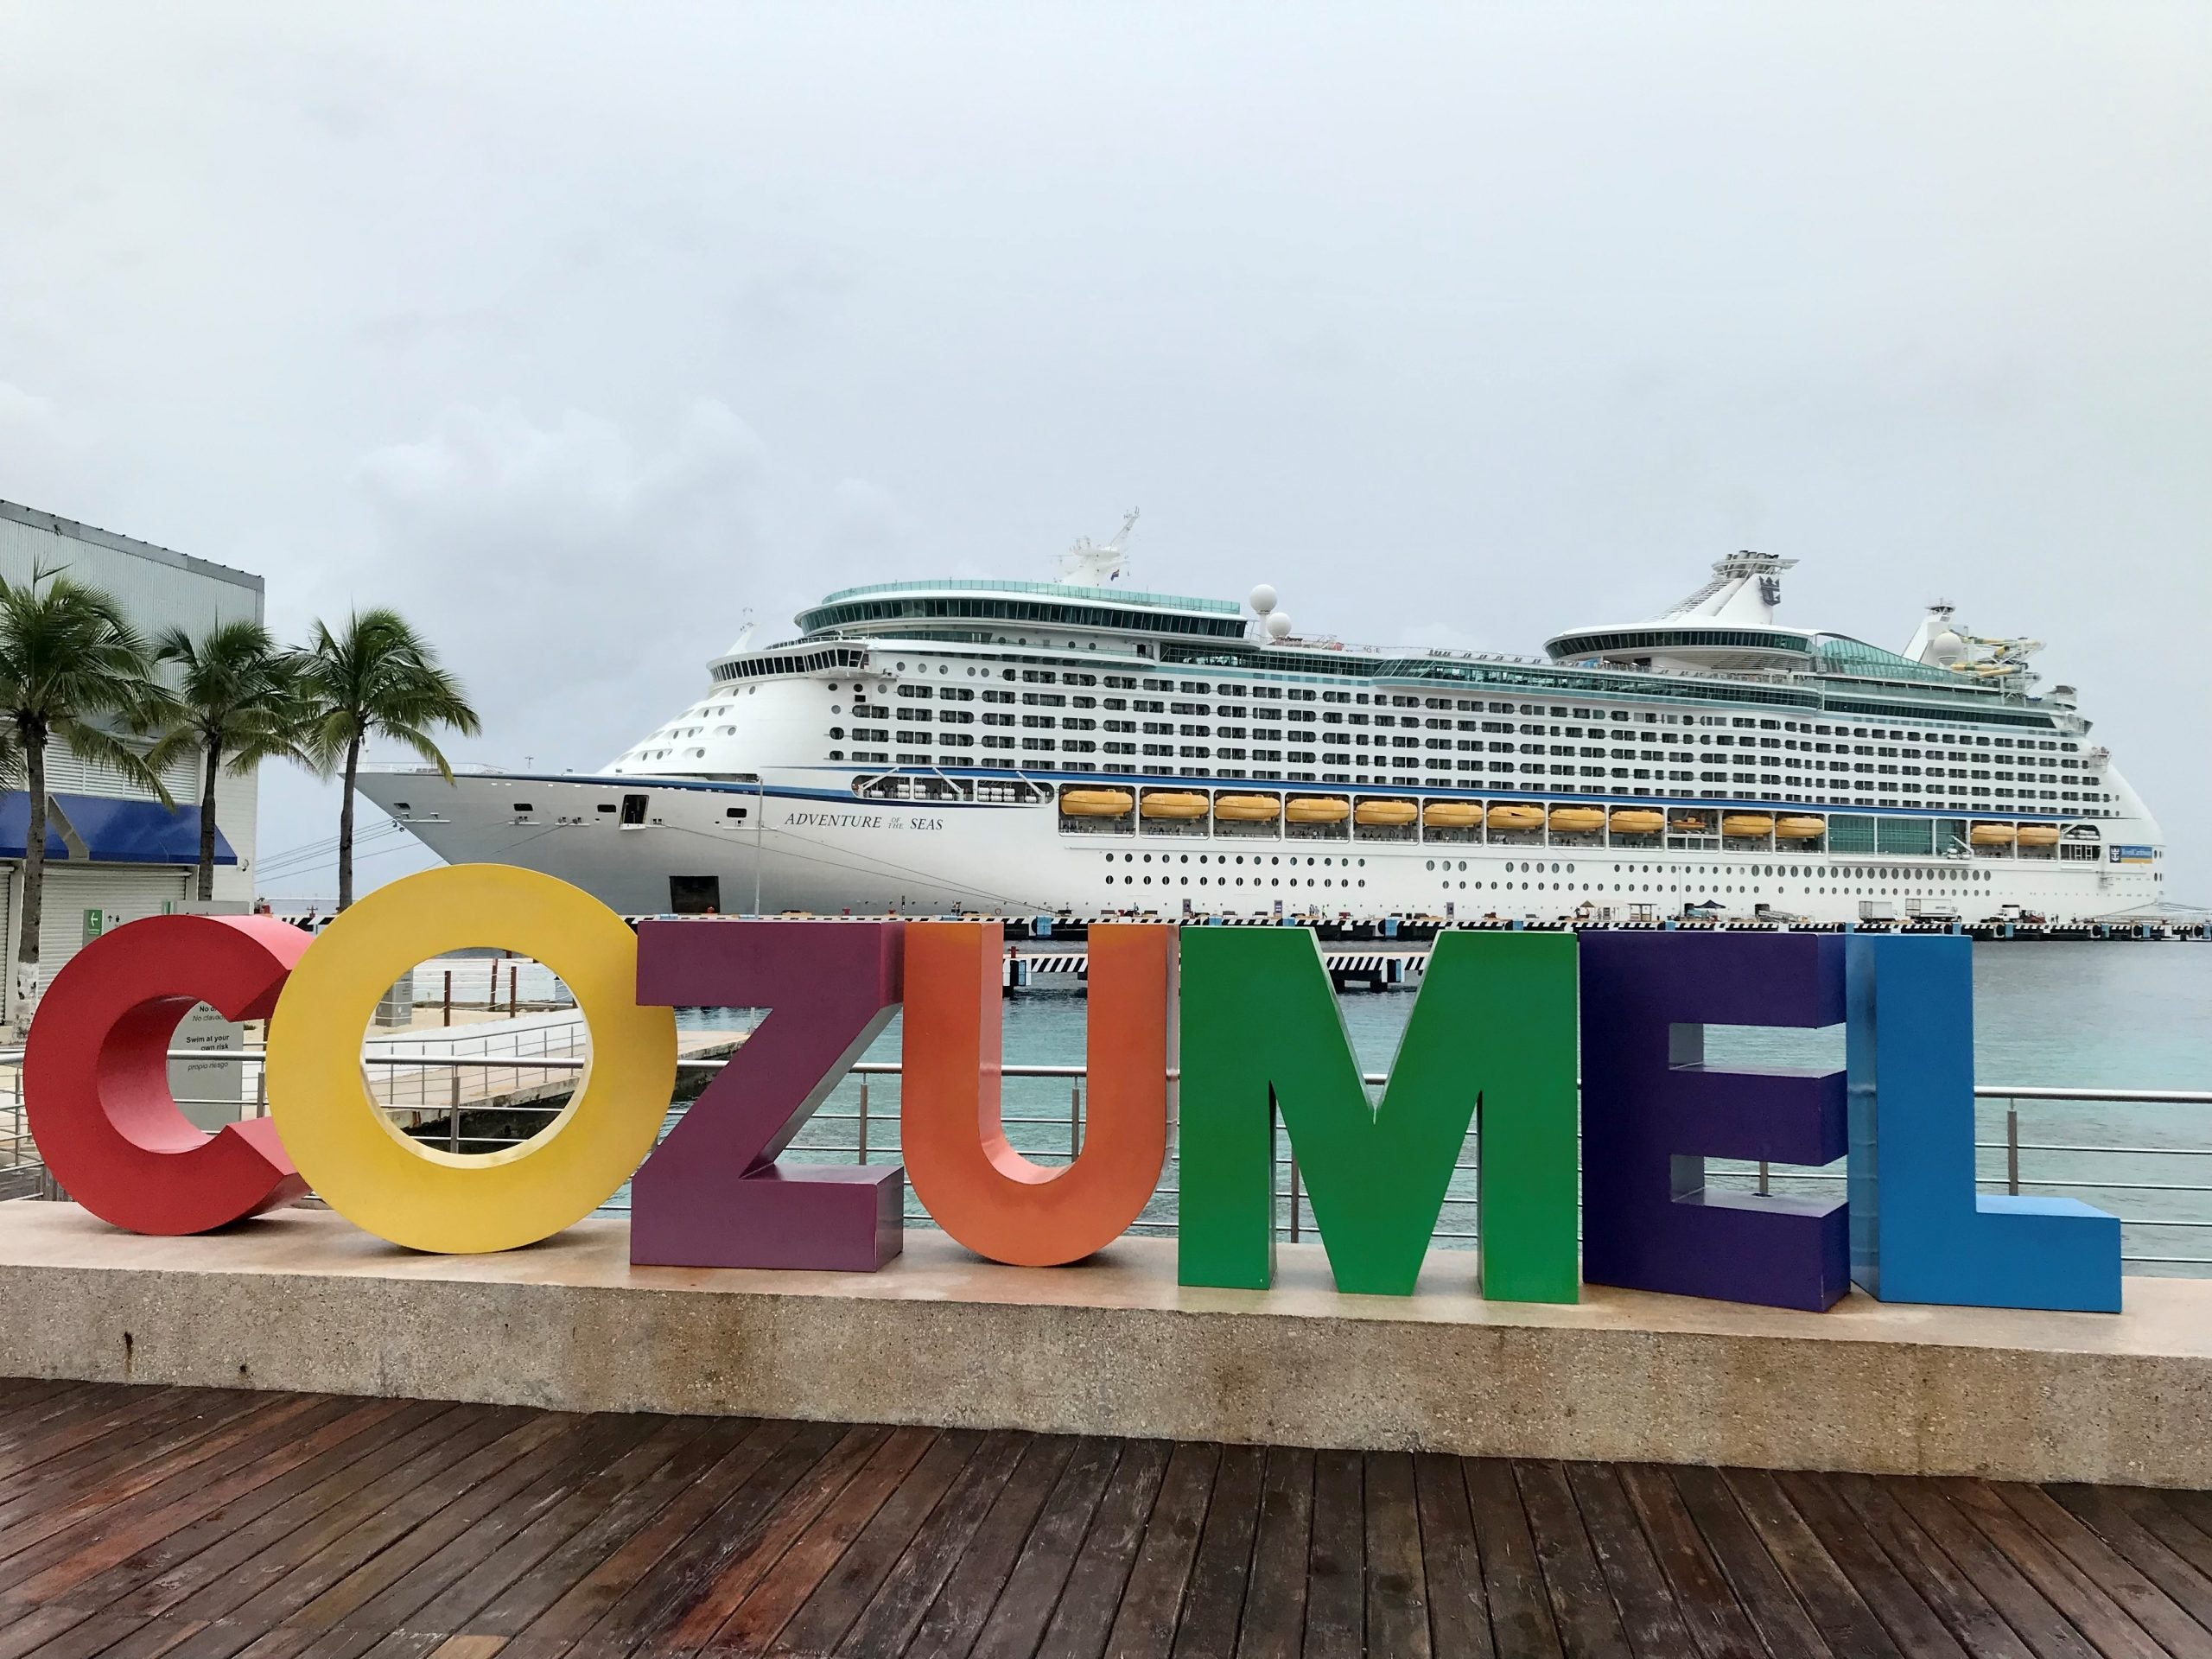 Go where you want, but wear a mask: The new rules for cruisers in Cozumel - The Points Guy